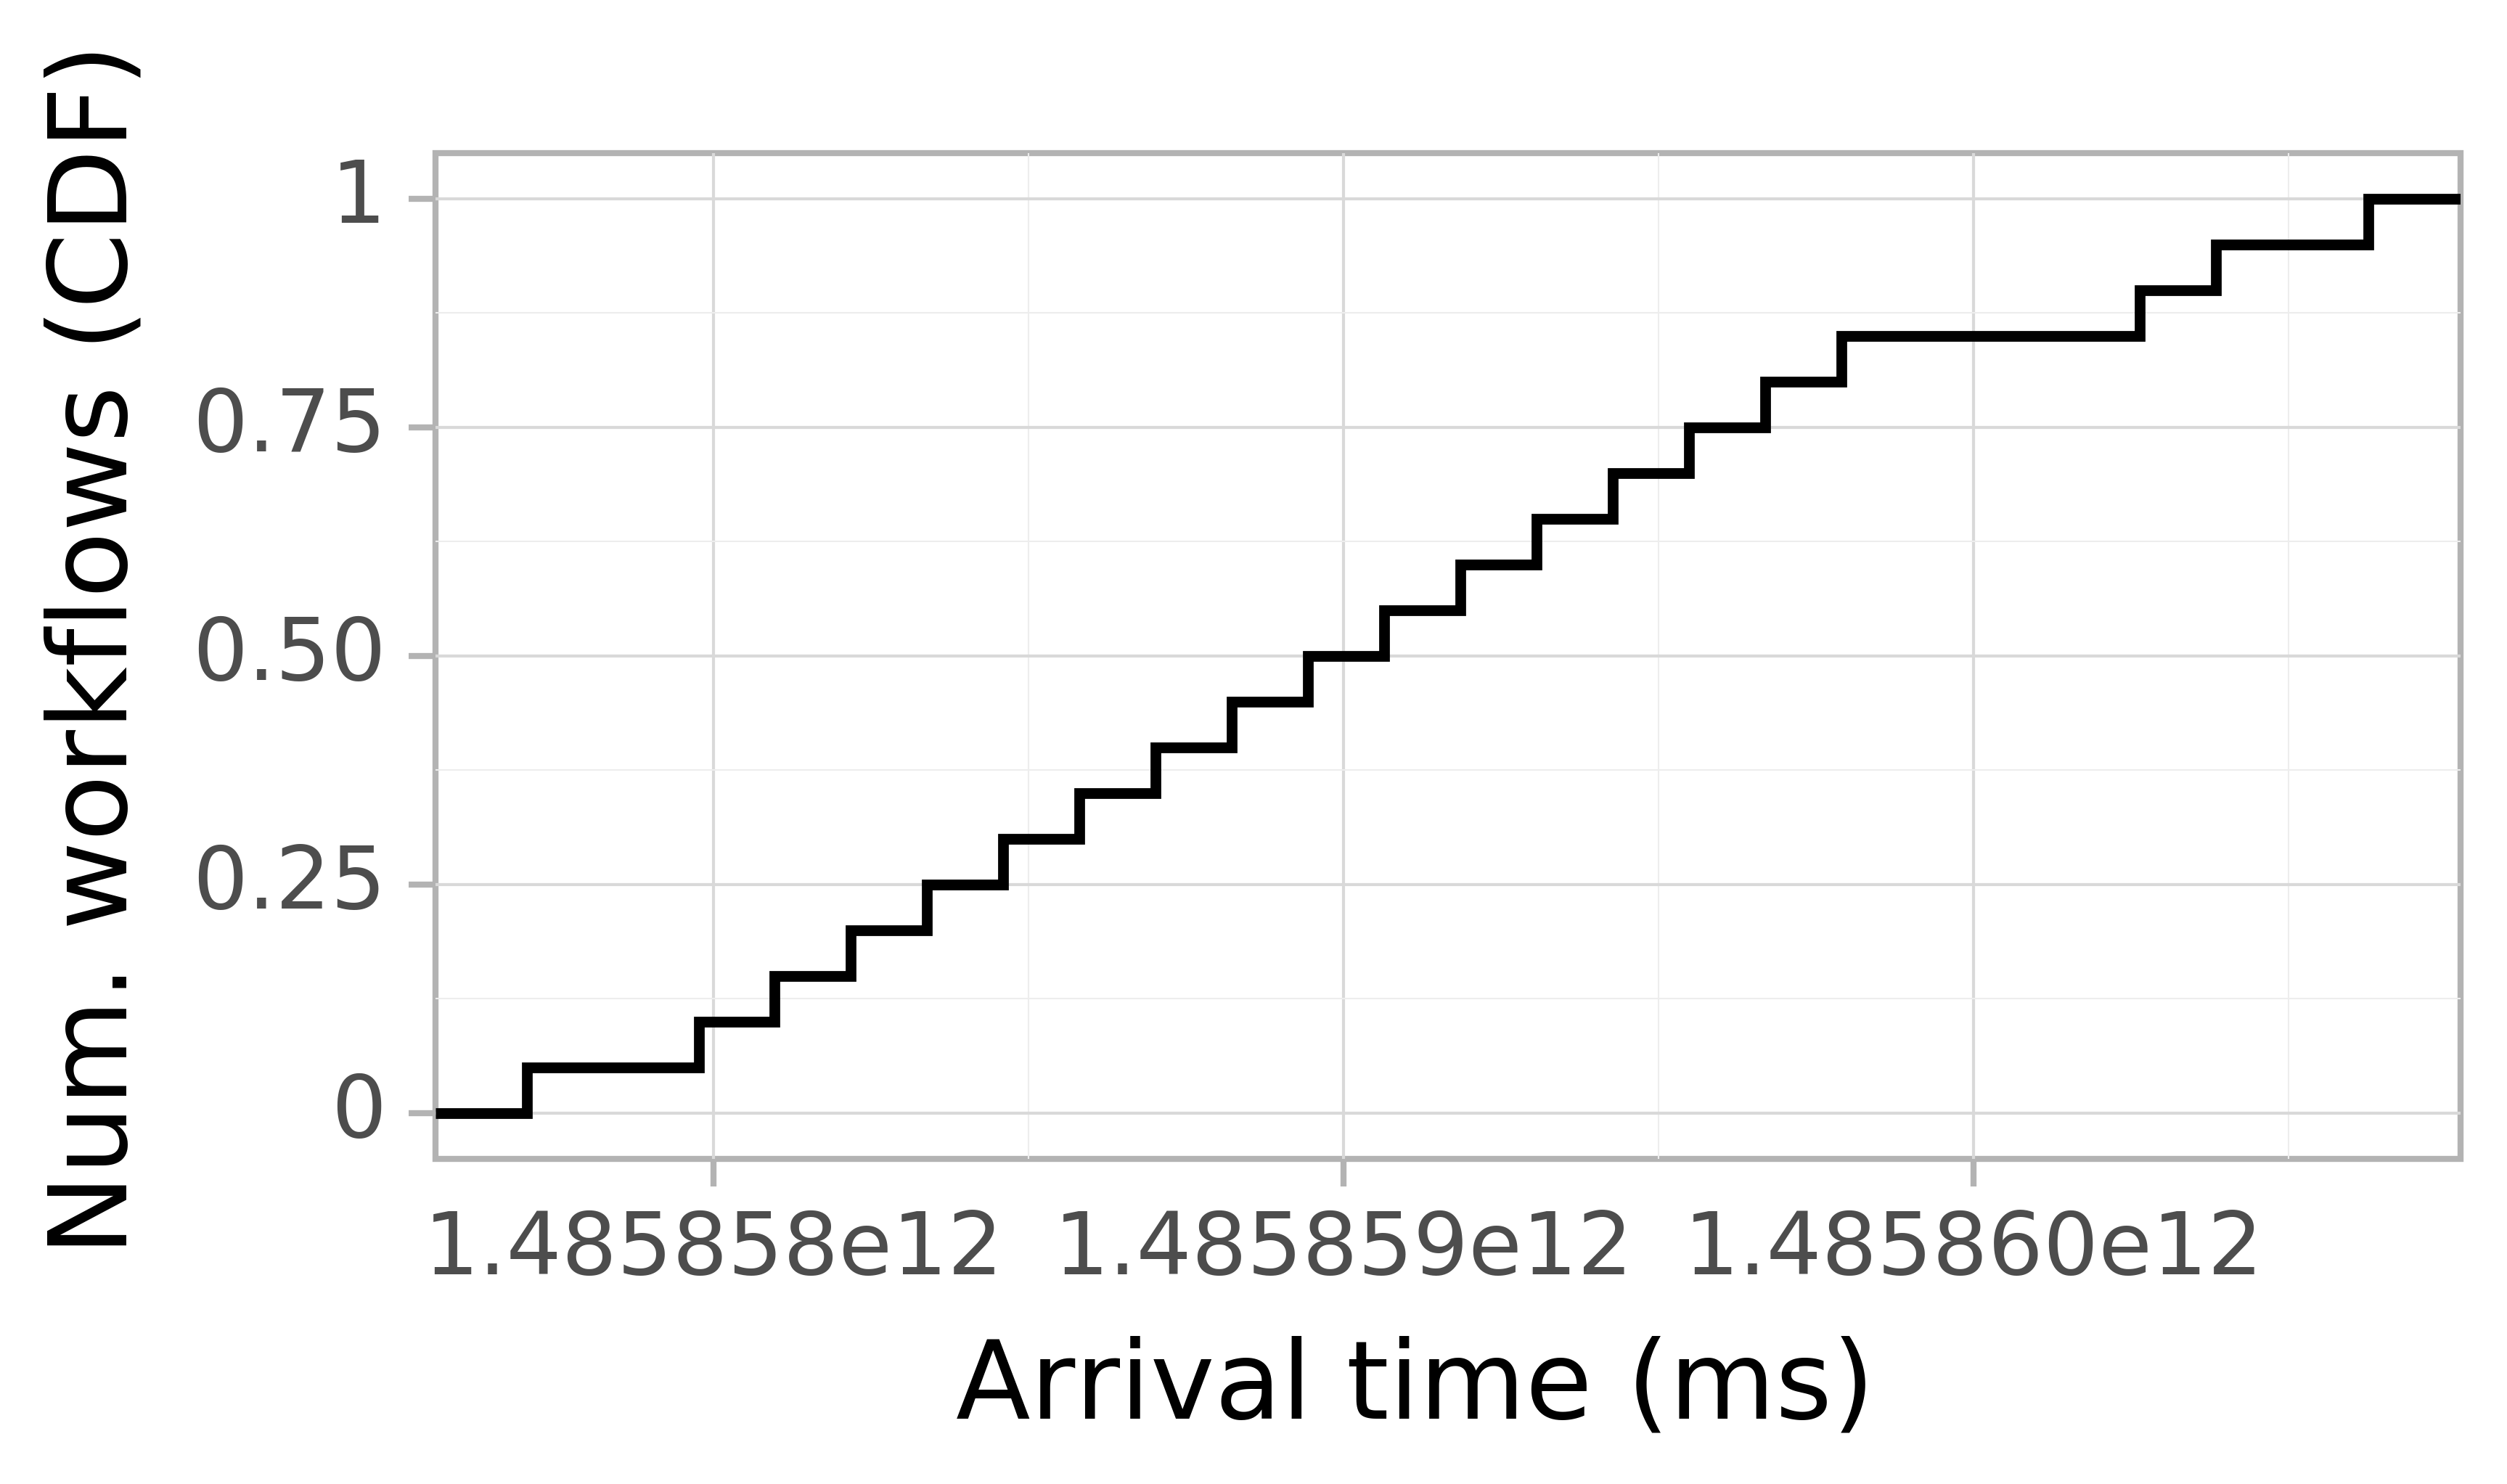 Job arrival CDF graph for the askalon-new_ee11 trace.